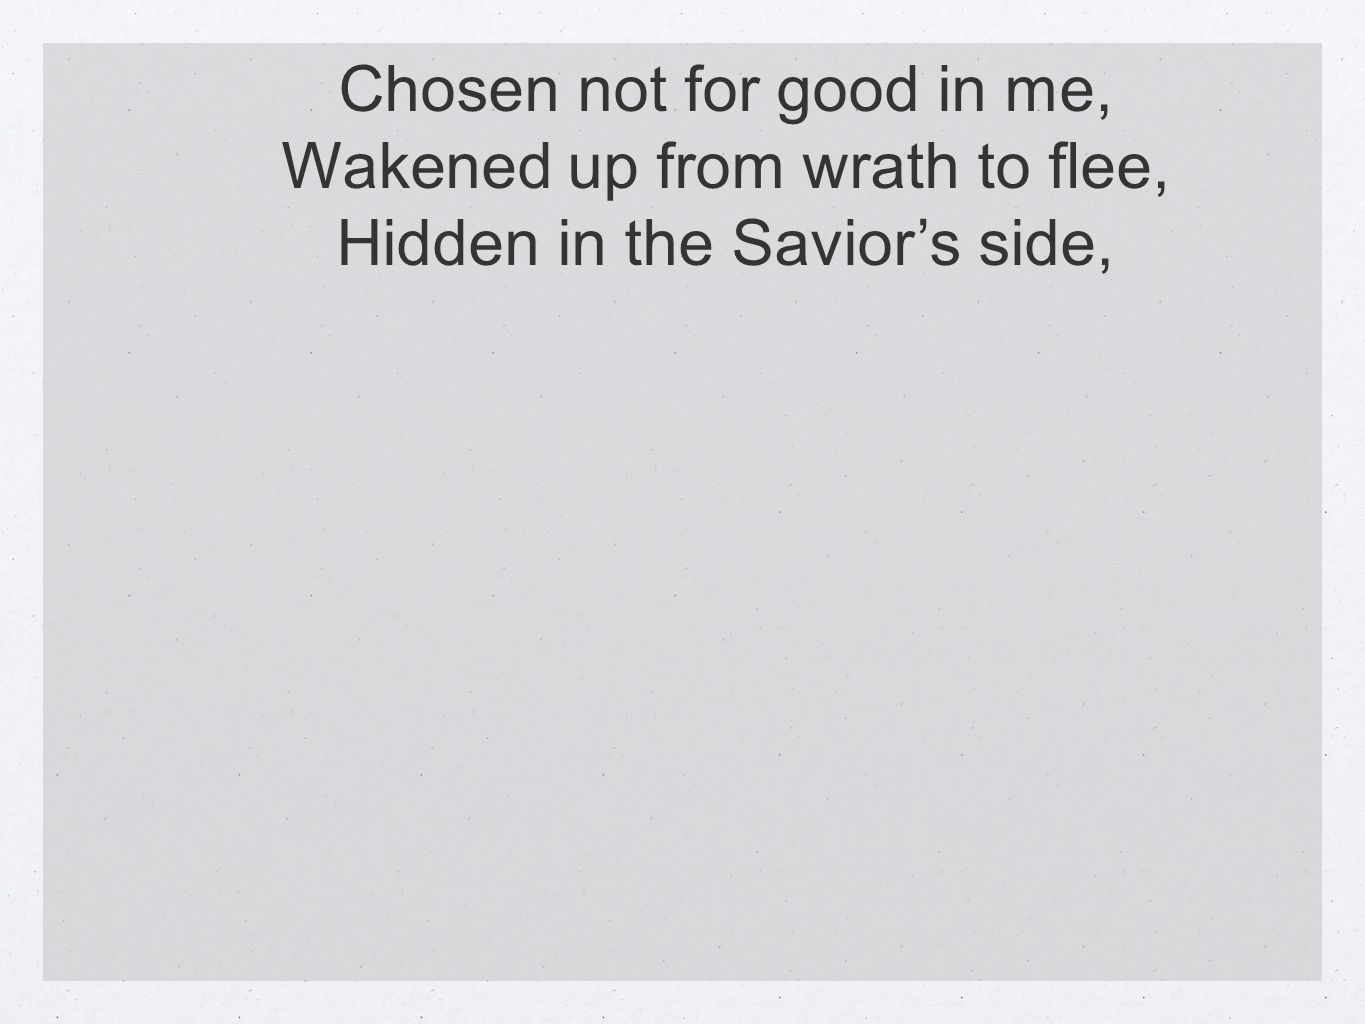 Chosen not for good in me, Wakened up from wrath to flee, Hidden in the Saviors side,